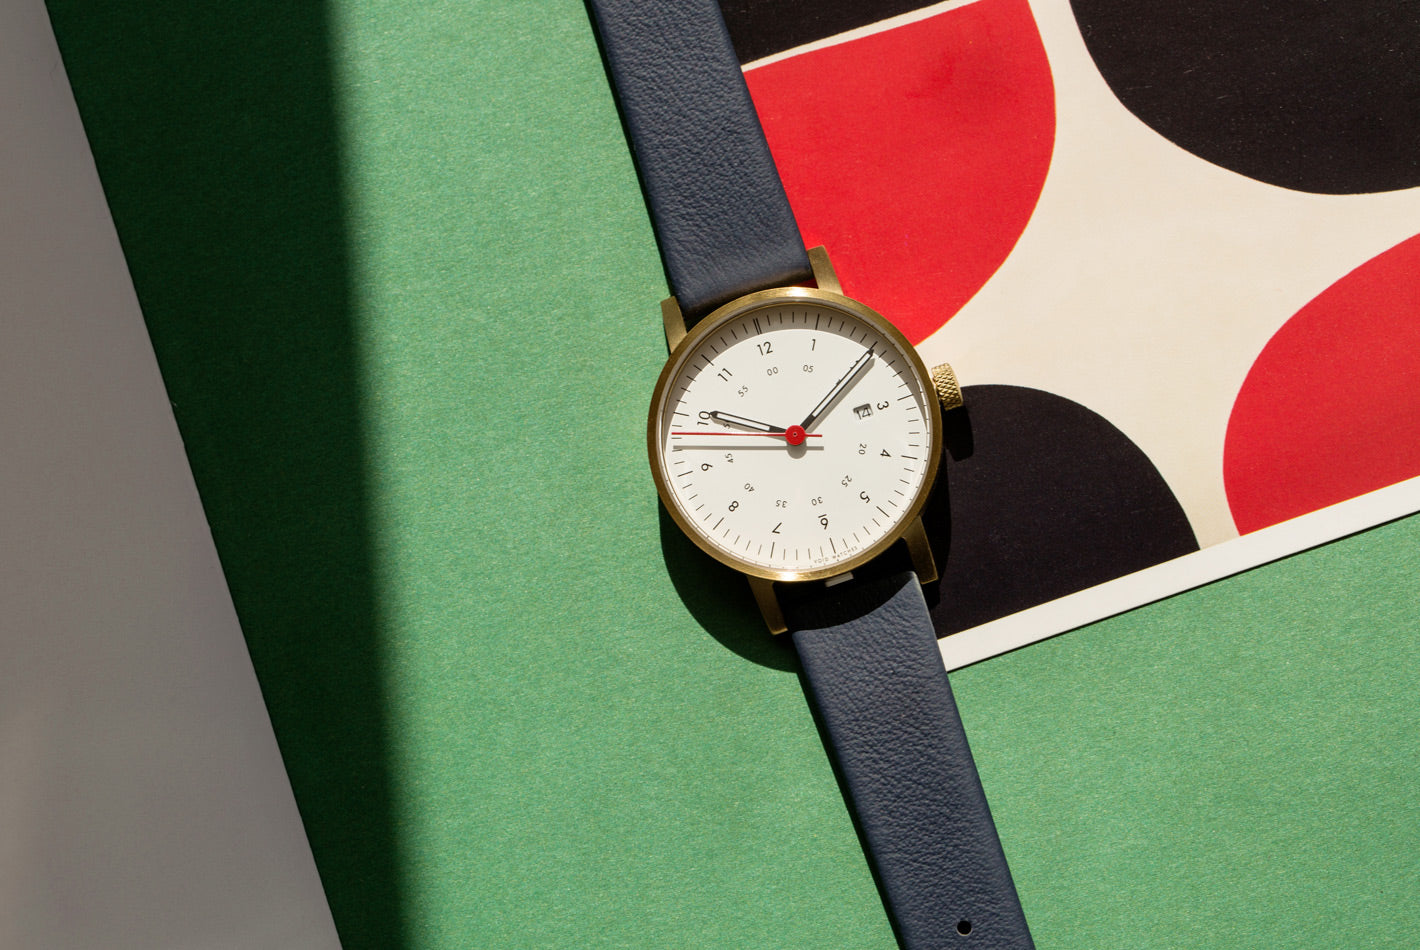 Replacement strap by VOID Watches using Sorensen Leather